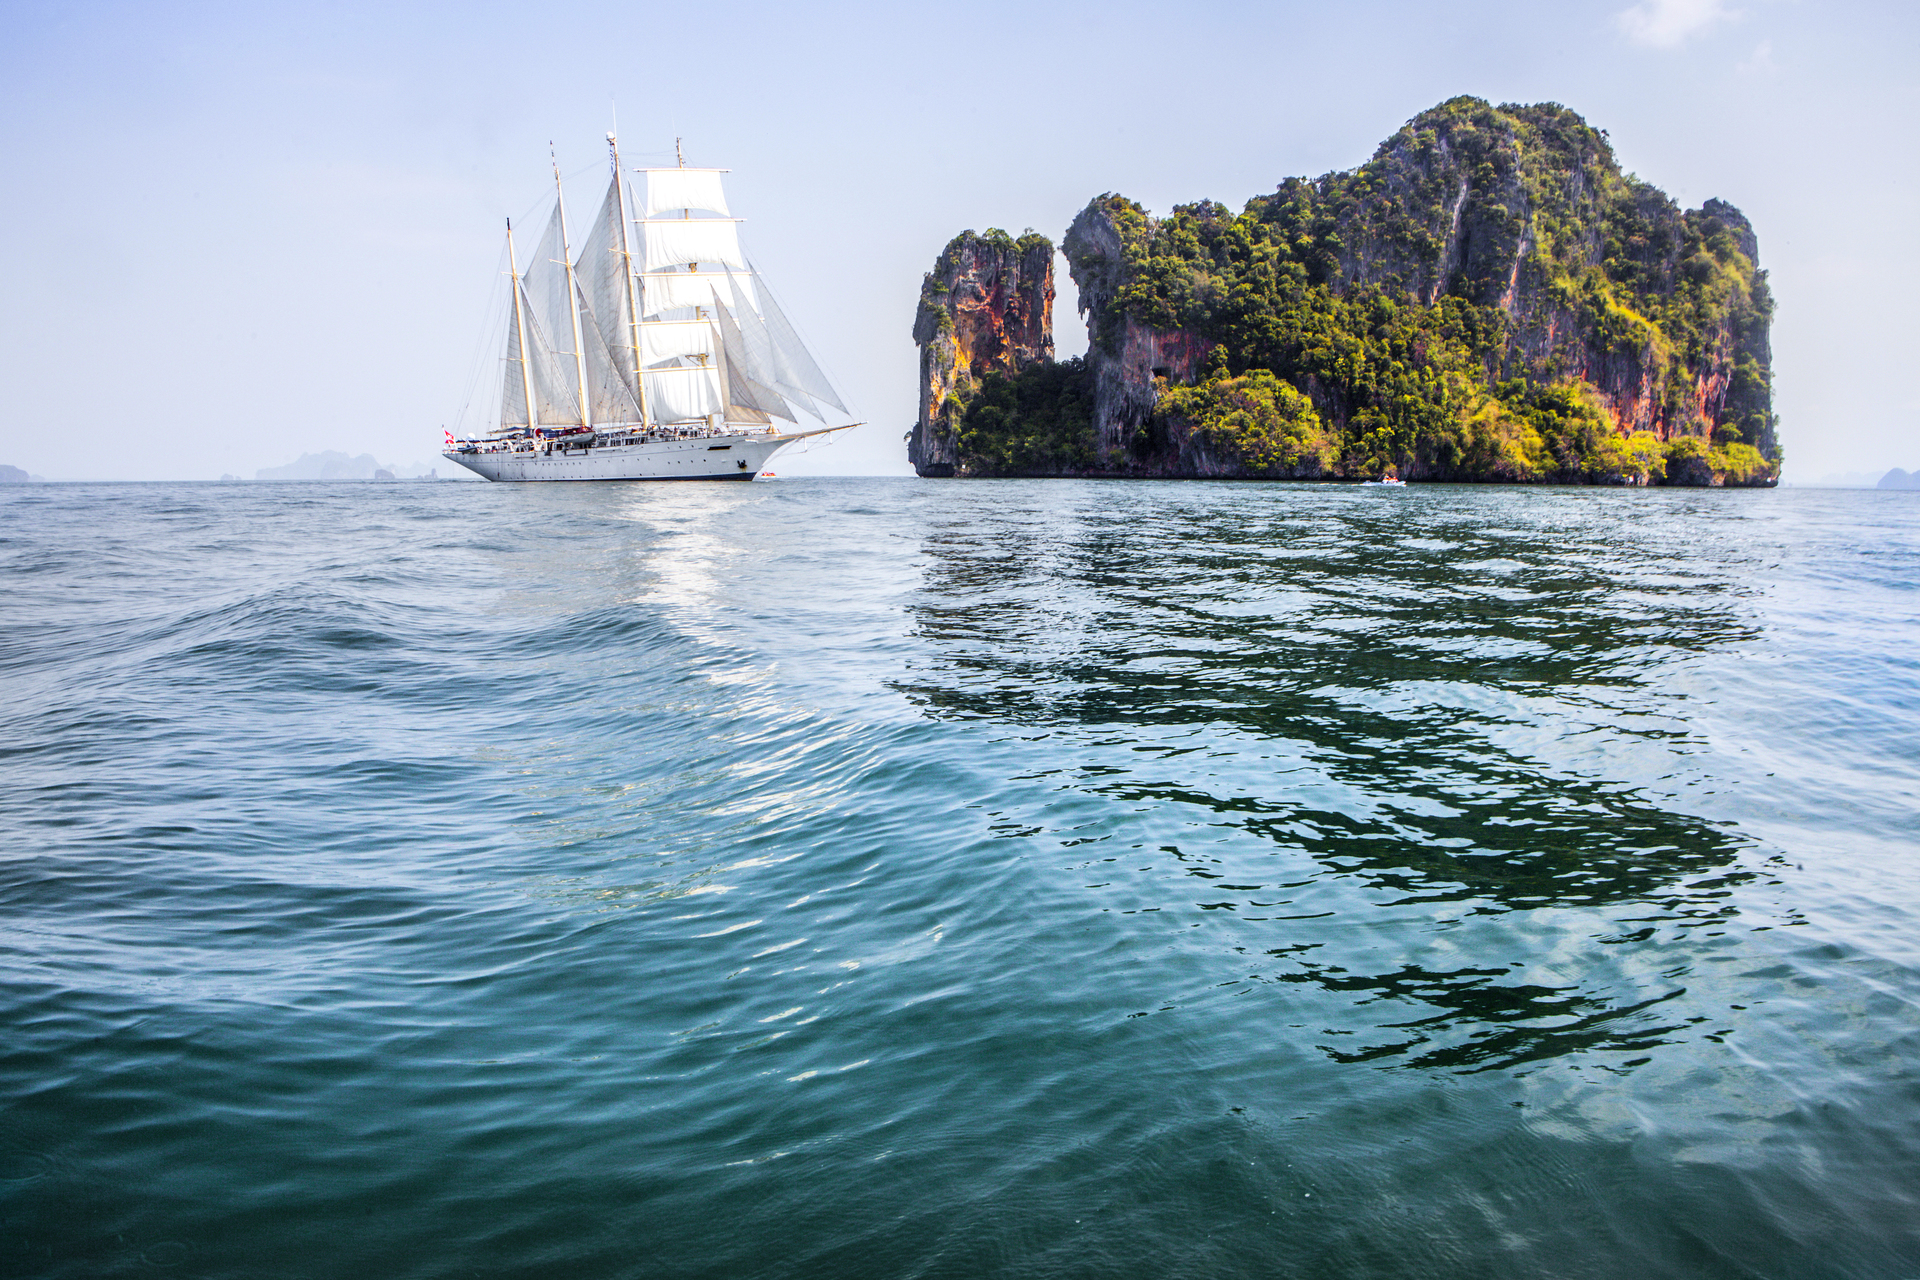 Starclippers_MG_2105 (1).JPG